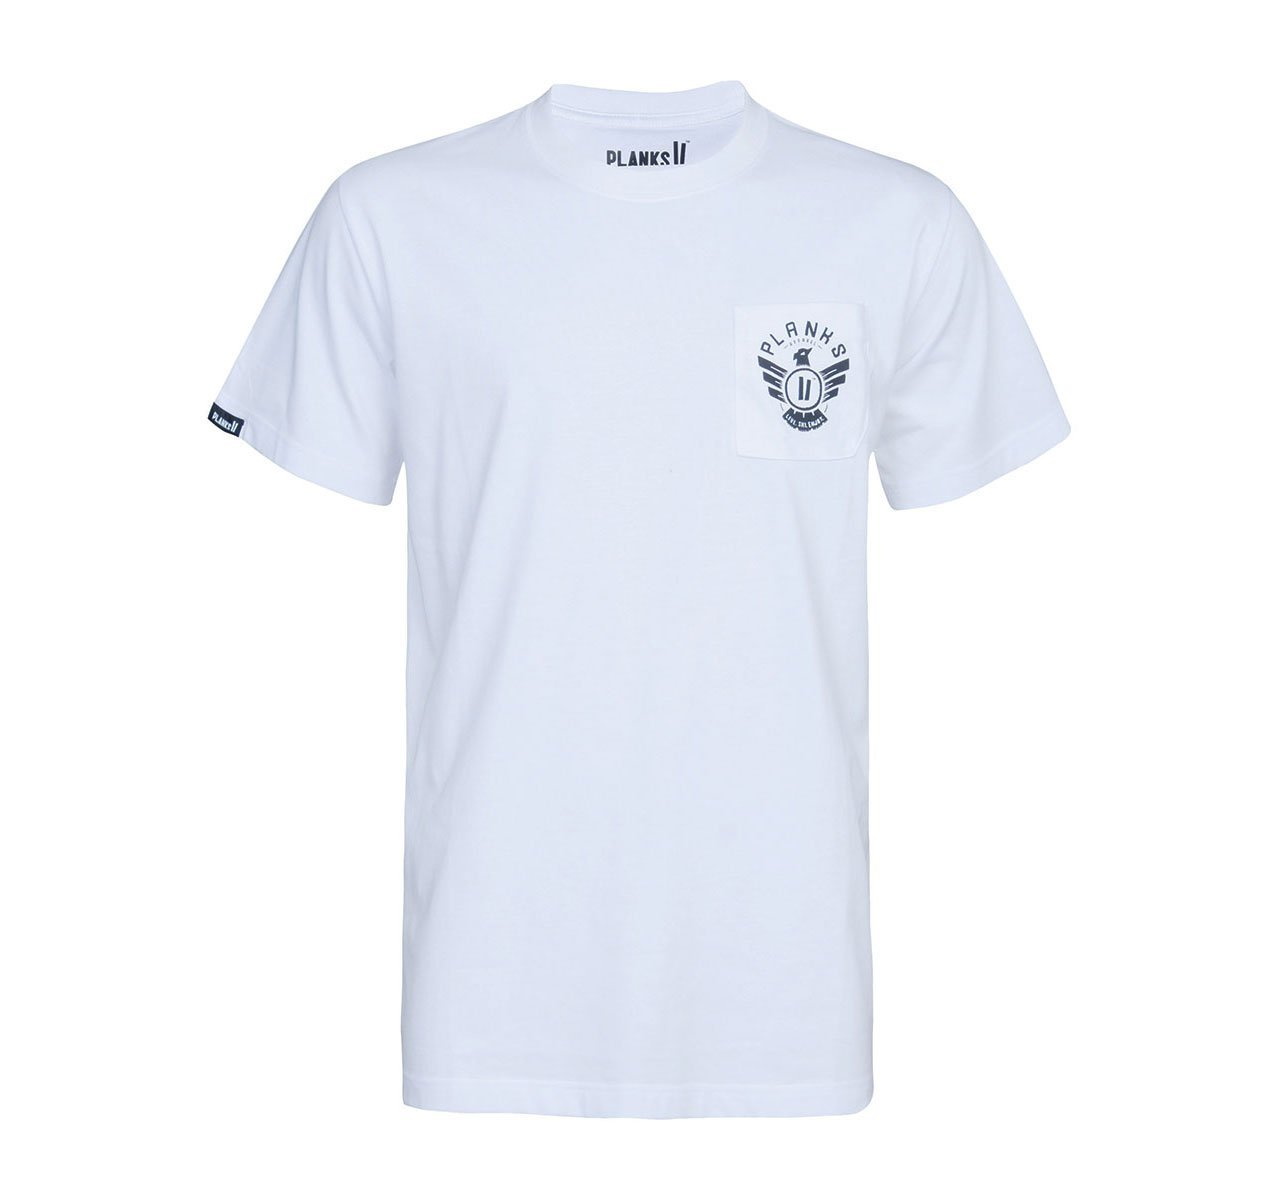 Planks Eagle Pocket T-Shirt 2019 Small Small MLT-EAGLE903B-S